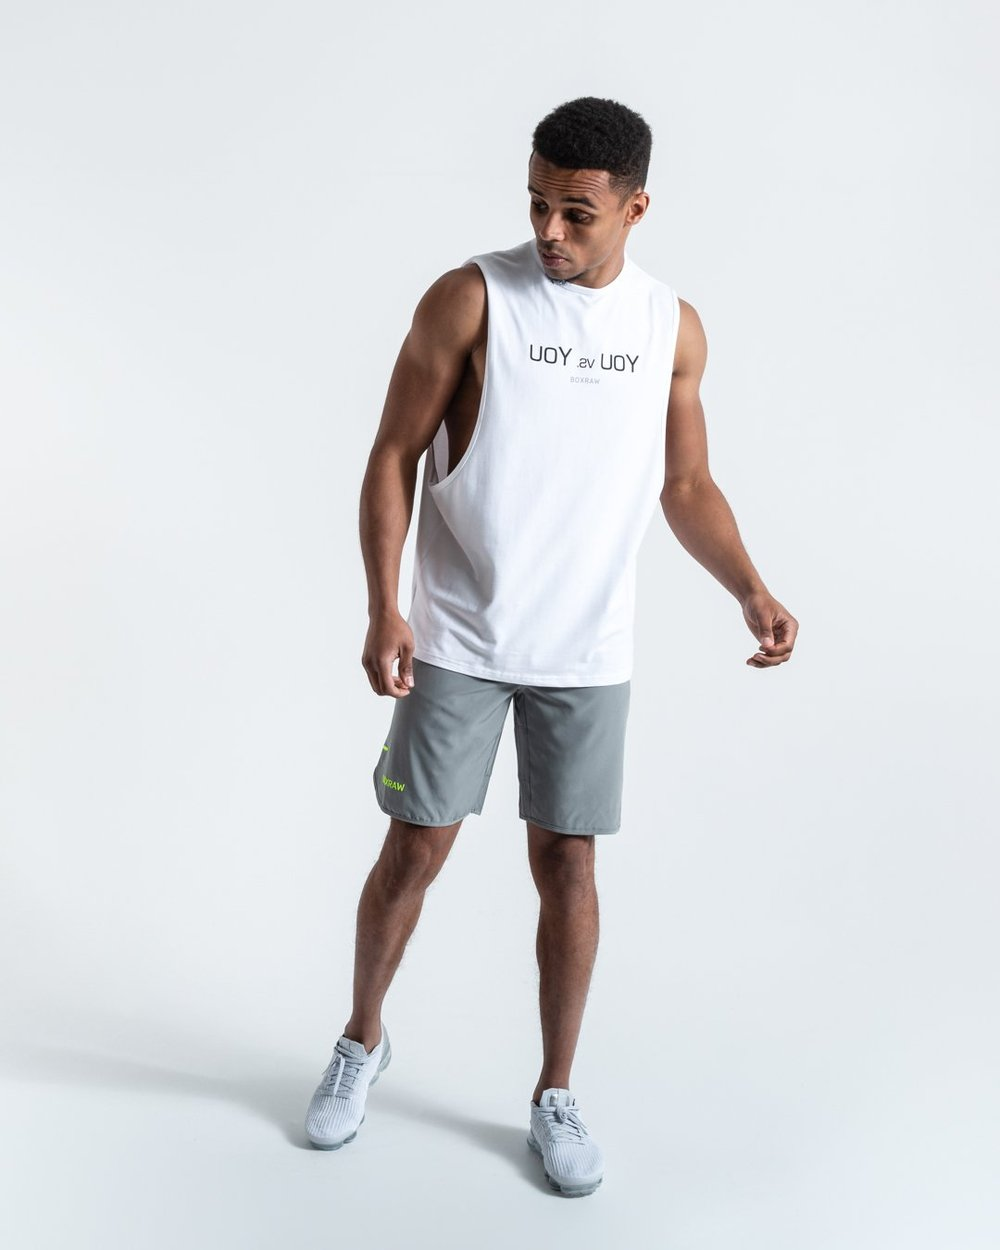 YOU VS. YOU MUSCLE TANK - WHITE - Pandemic Fight Gear Inc.